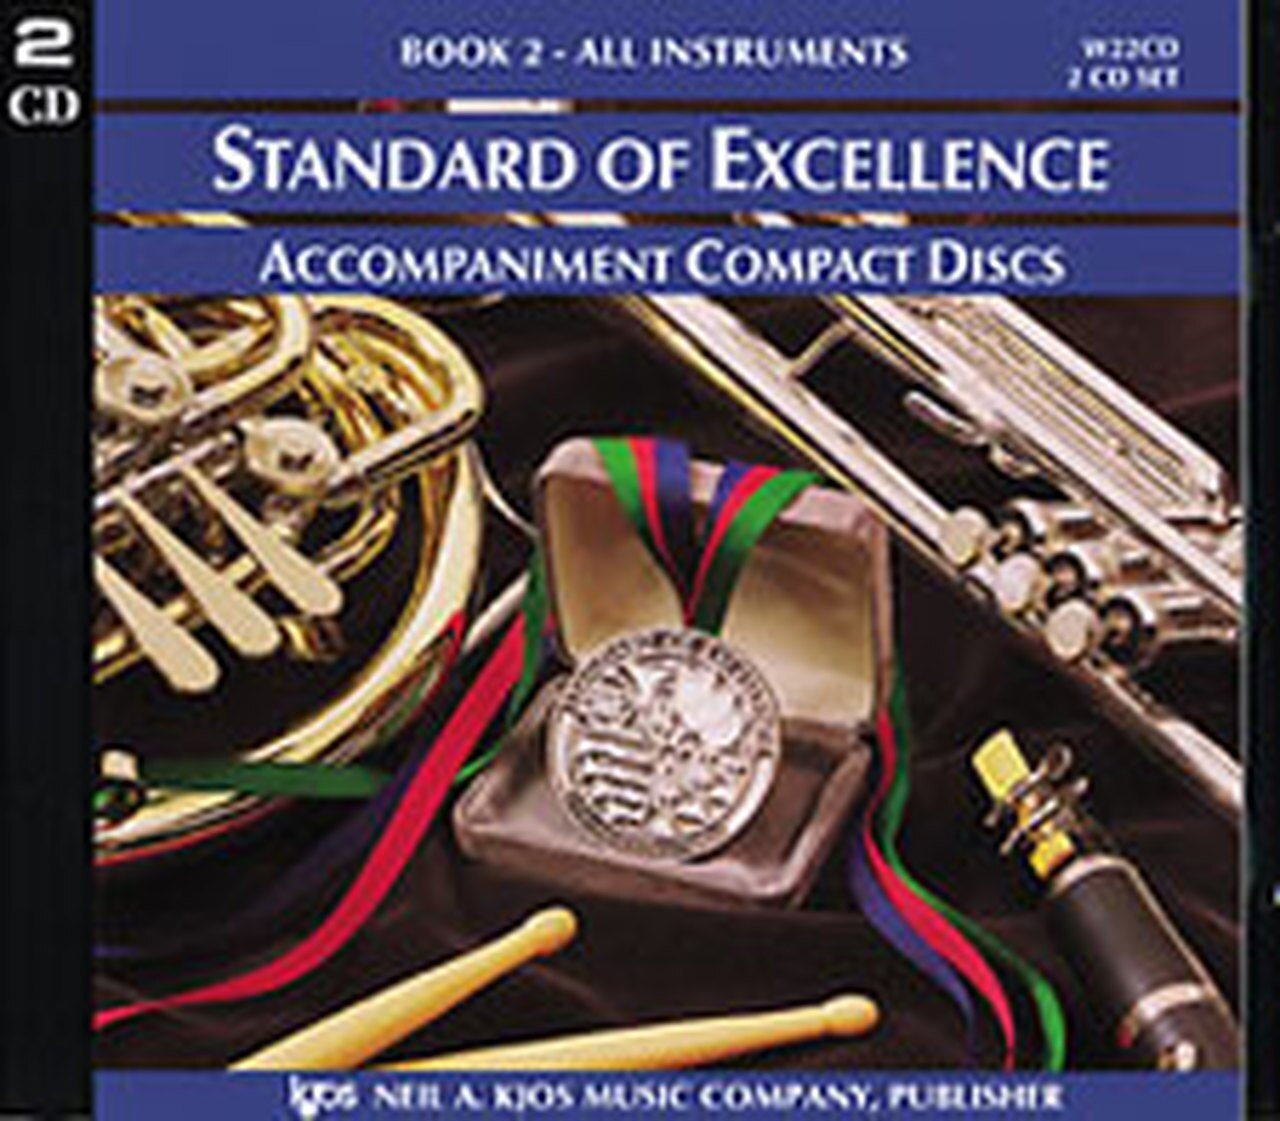 STANDARD OF EXCELLENCE 2 ACCOMPANIMENT DISK (2 CD SET) PEARS